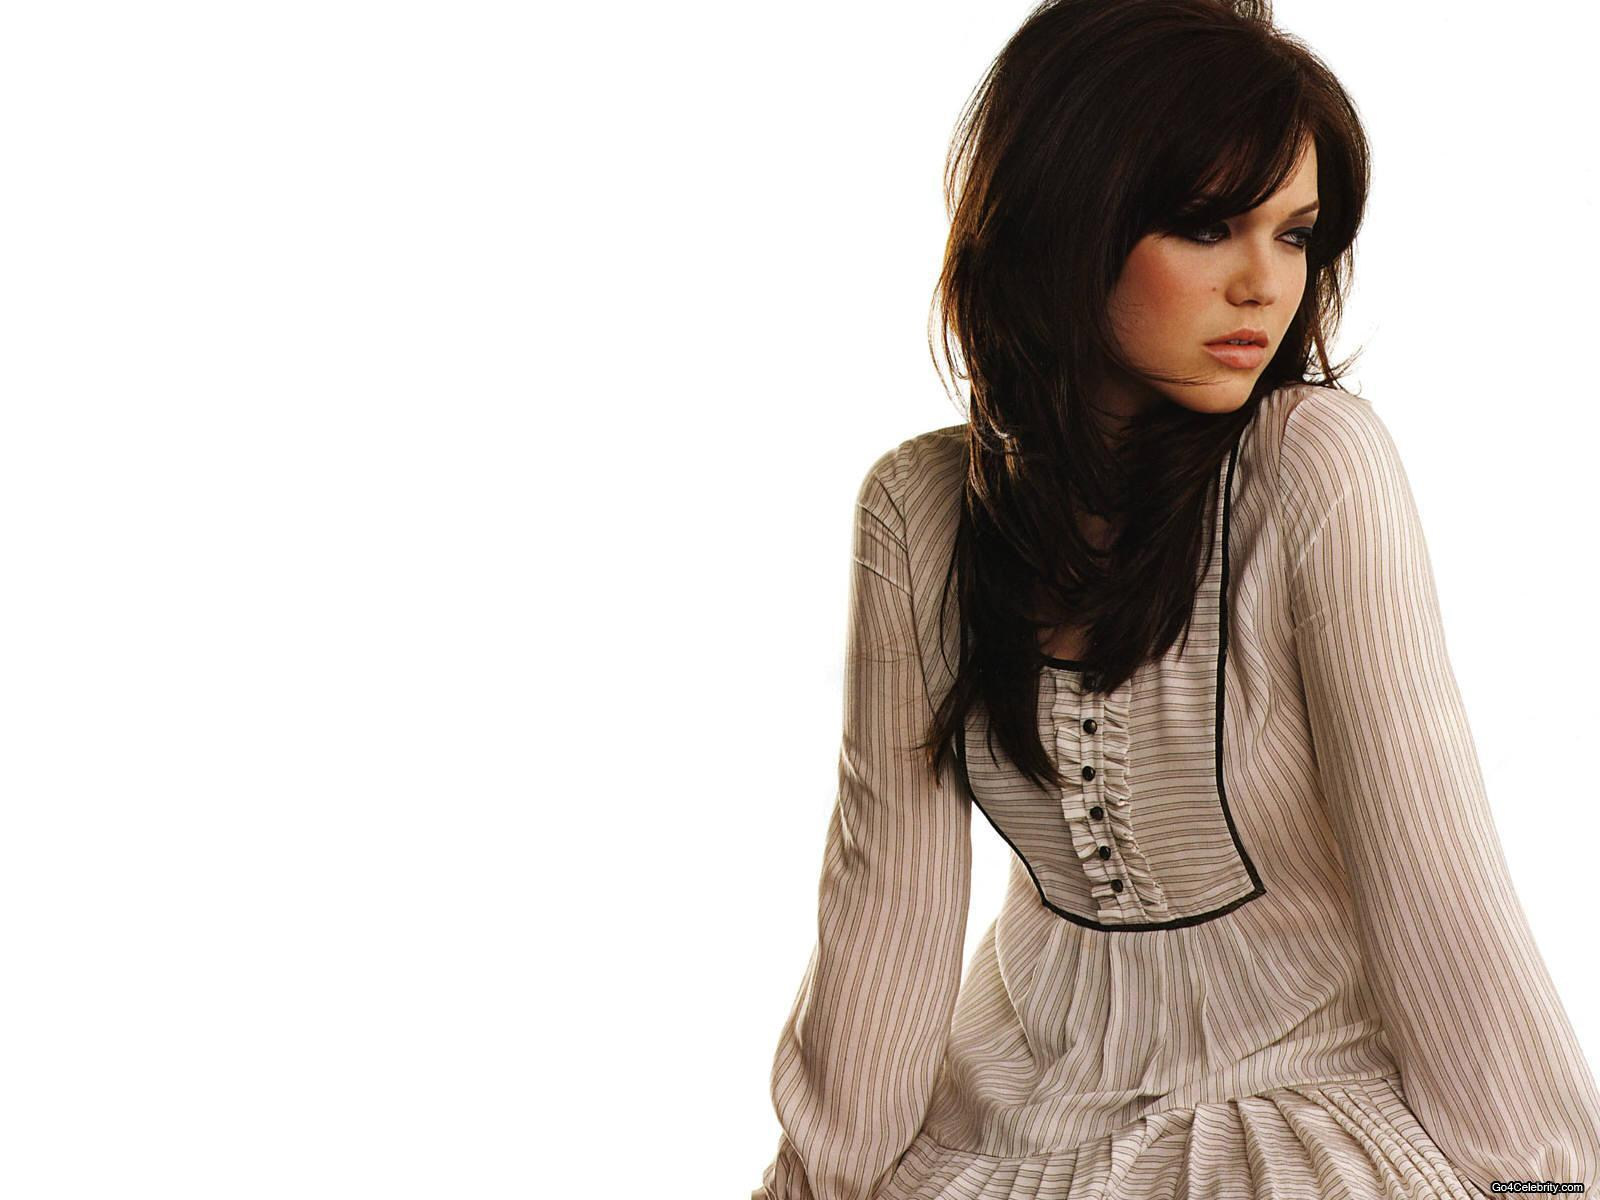 Other Photos in this gallery: fullhdpictures.com/mandy-moore-hq-wallpapers.html/hd-mandy-moore...